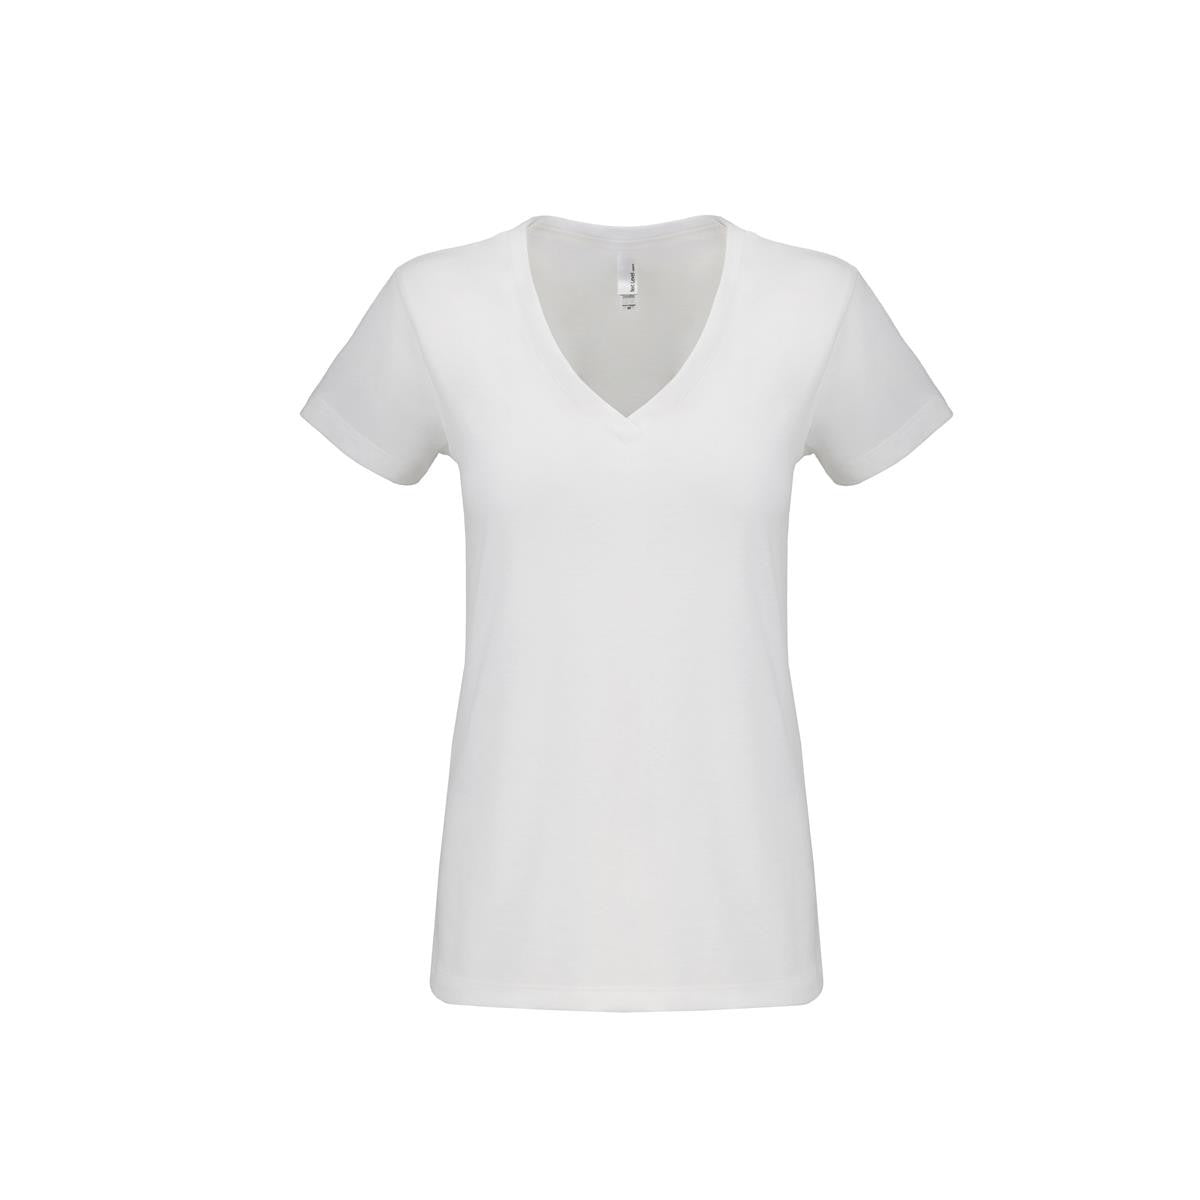 Women's Sueded V-neck T-shirt